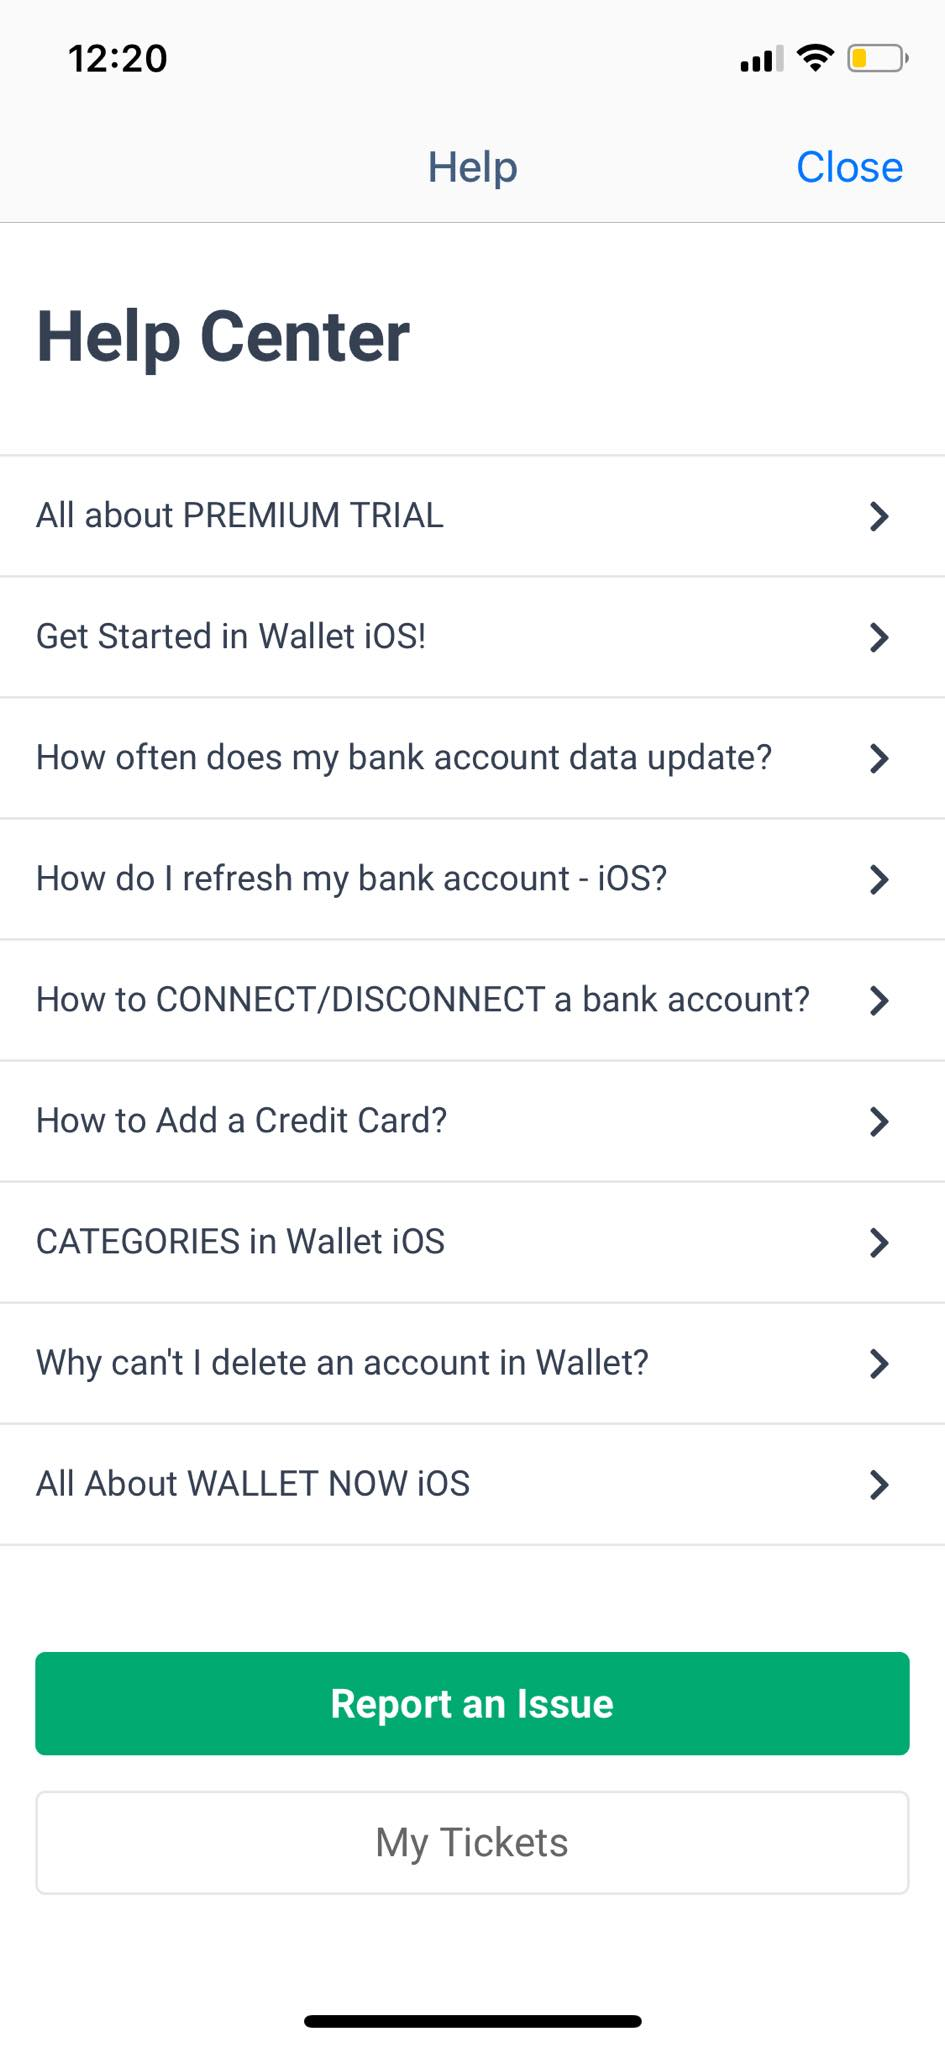 Help on iOS by Wallet from UIGarage